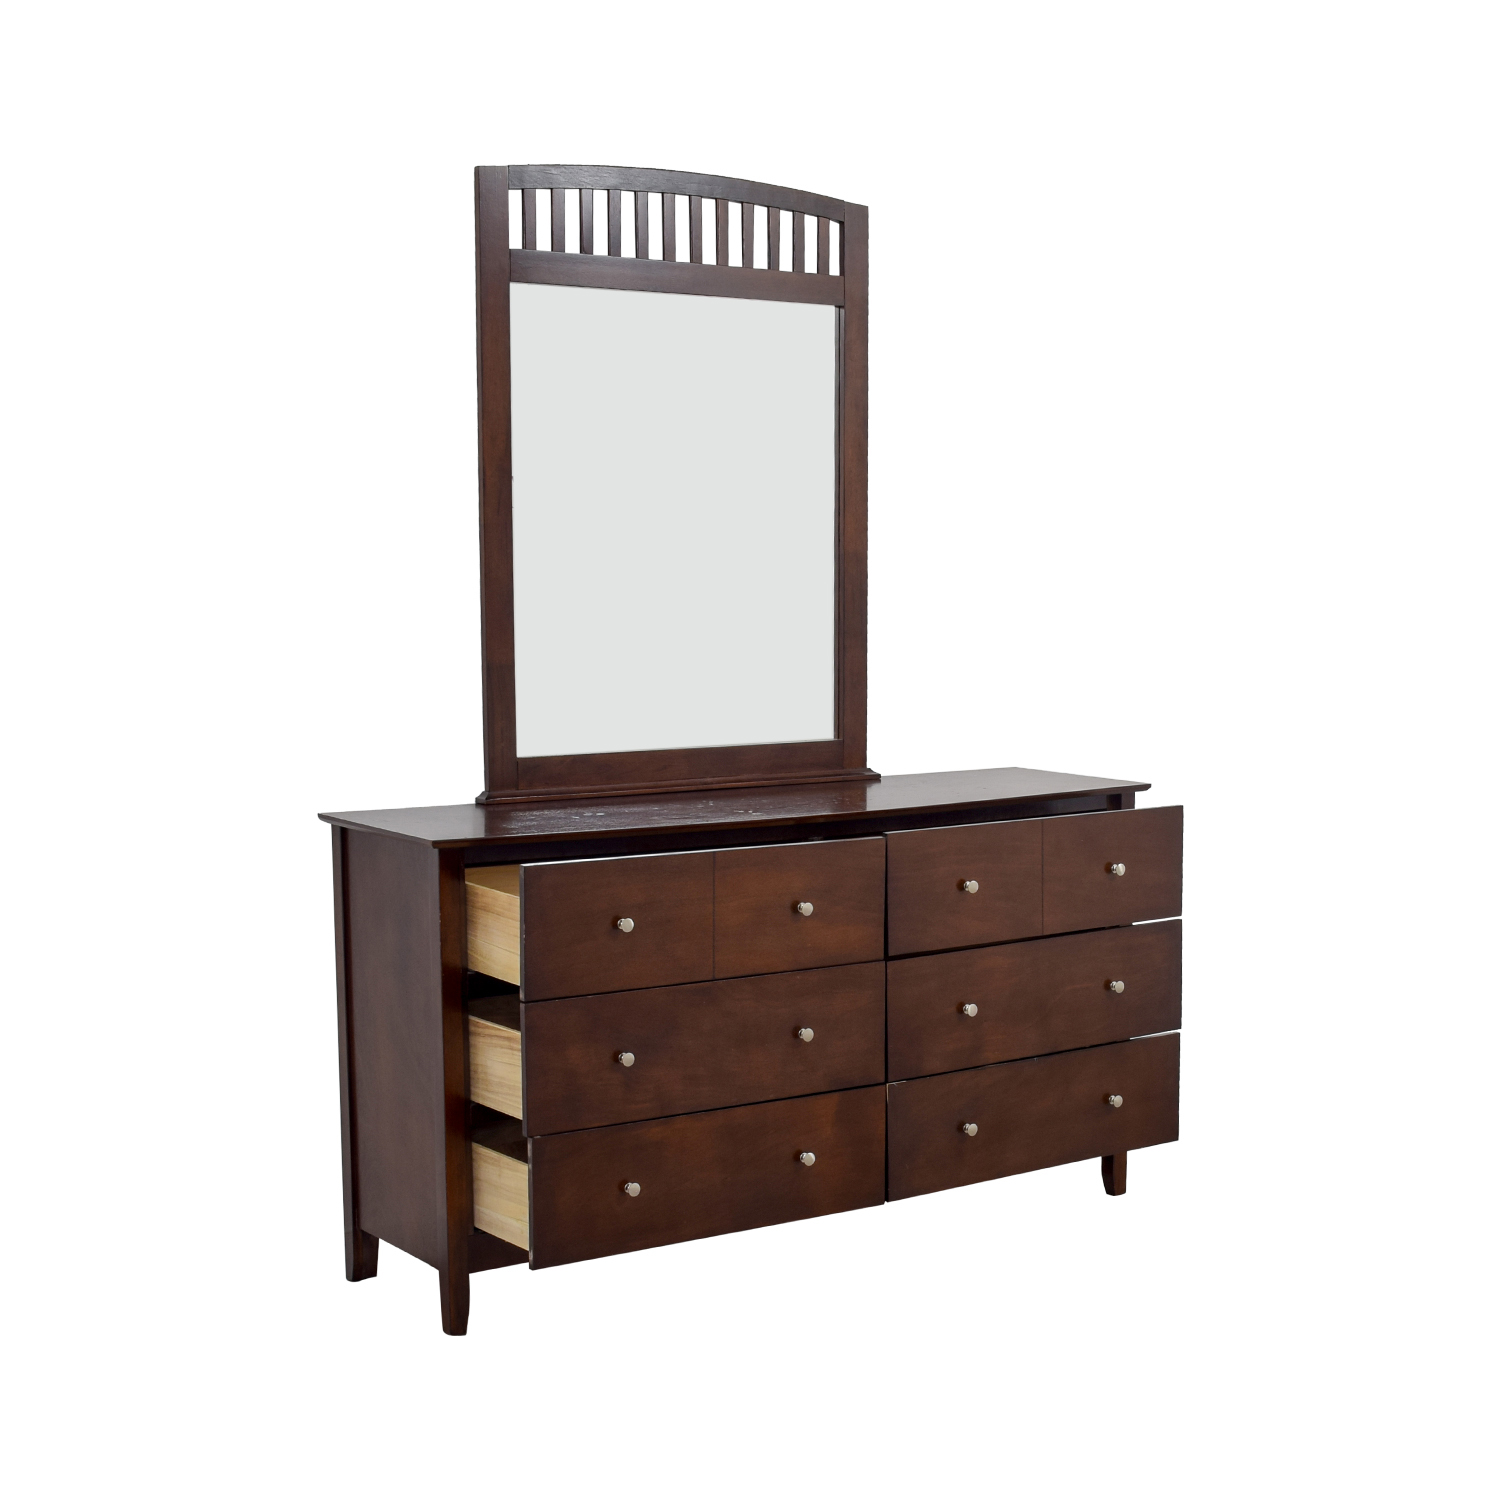 48 Off Bob 39 S Furniture Bob 39 S Furniture Eight Drawer Dresser With Caged Mirror Storage